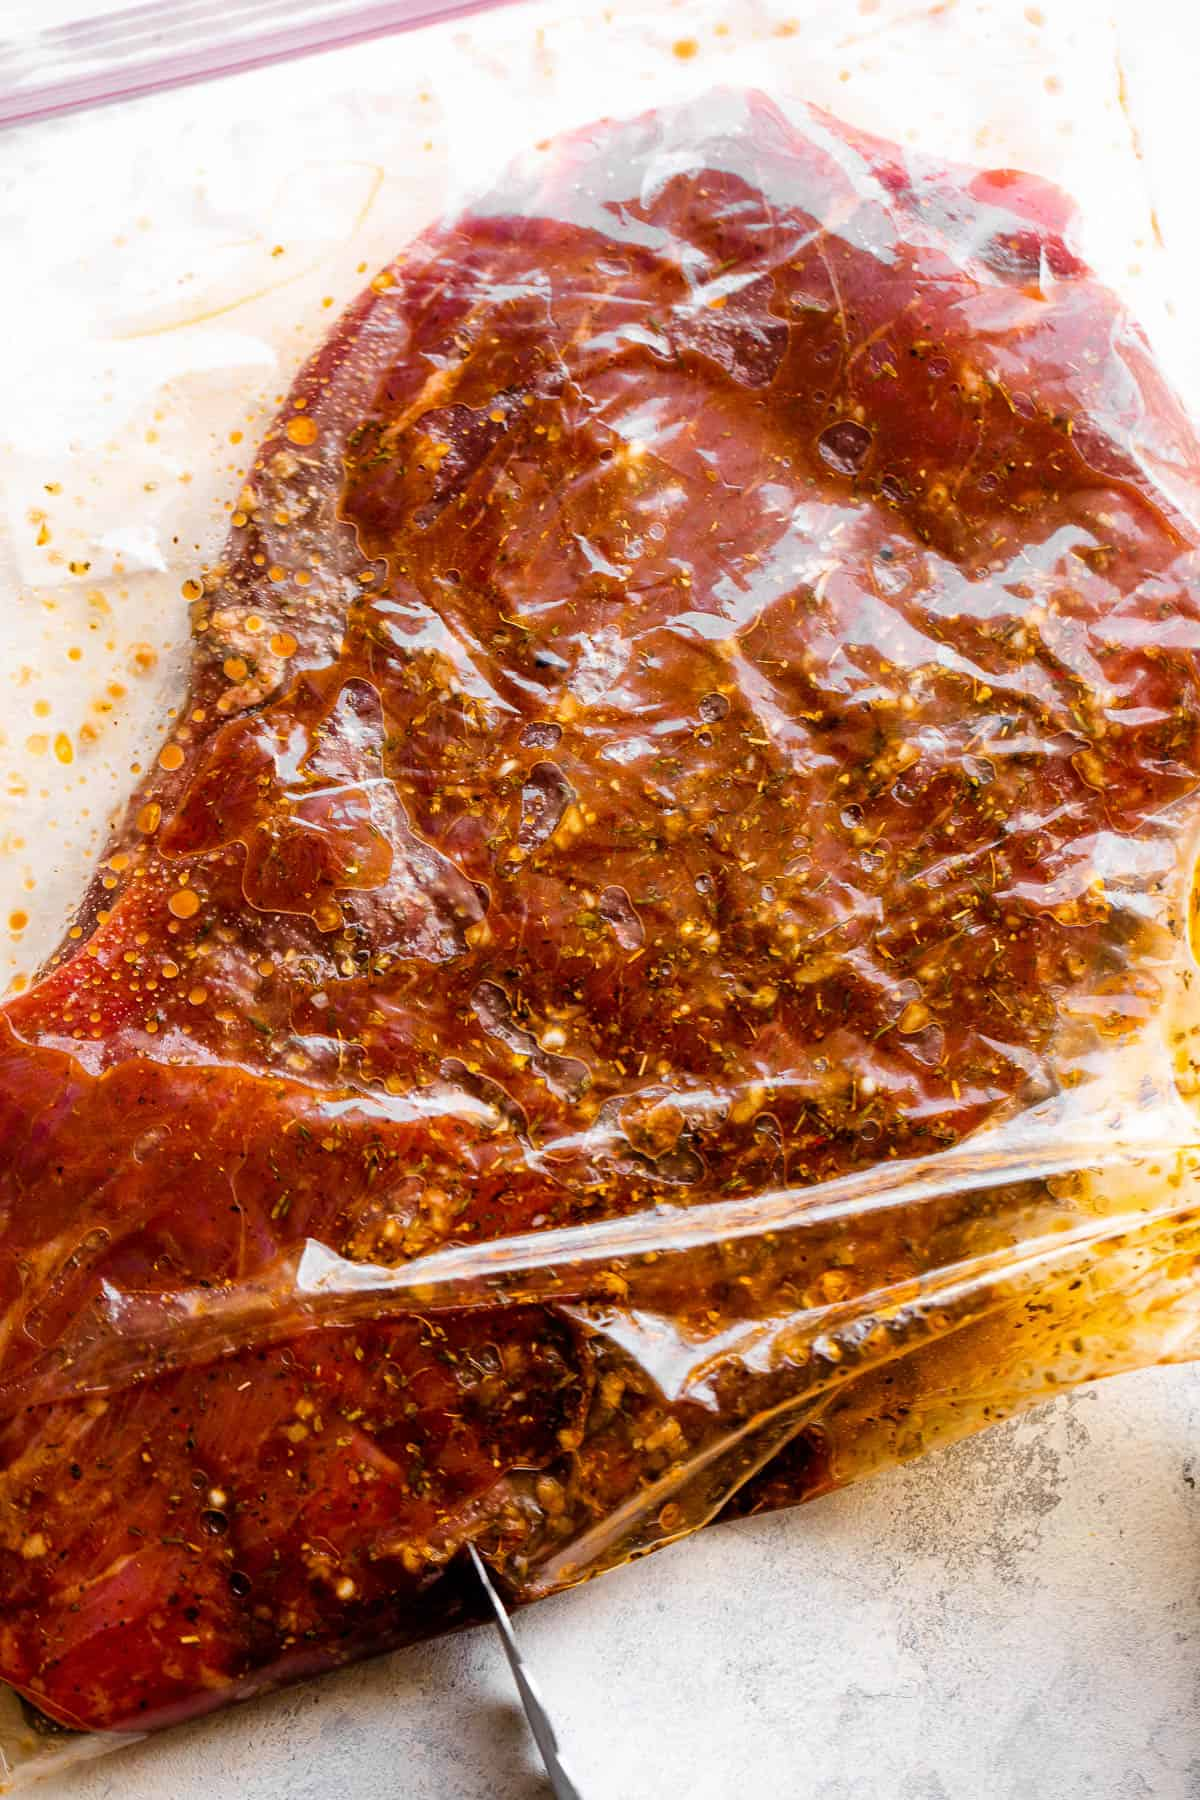 marinating flank steak in a ziploc bag